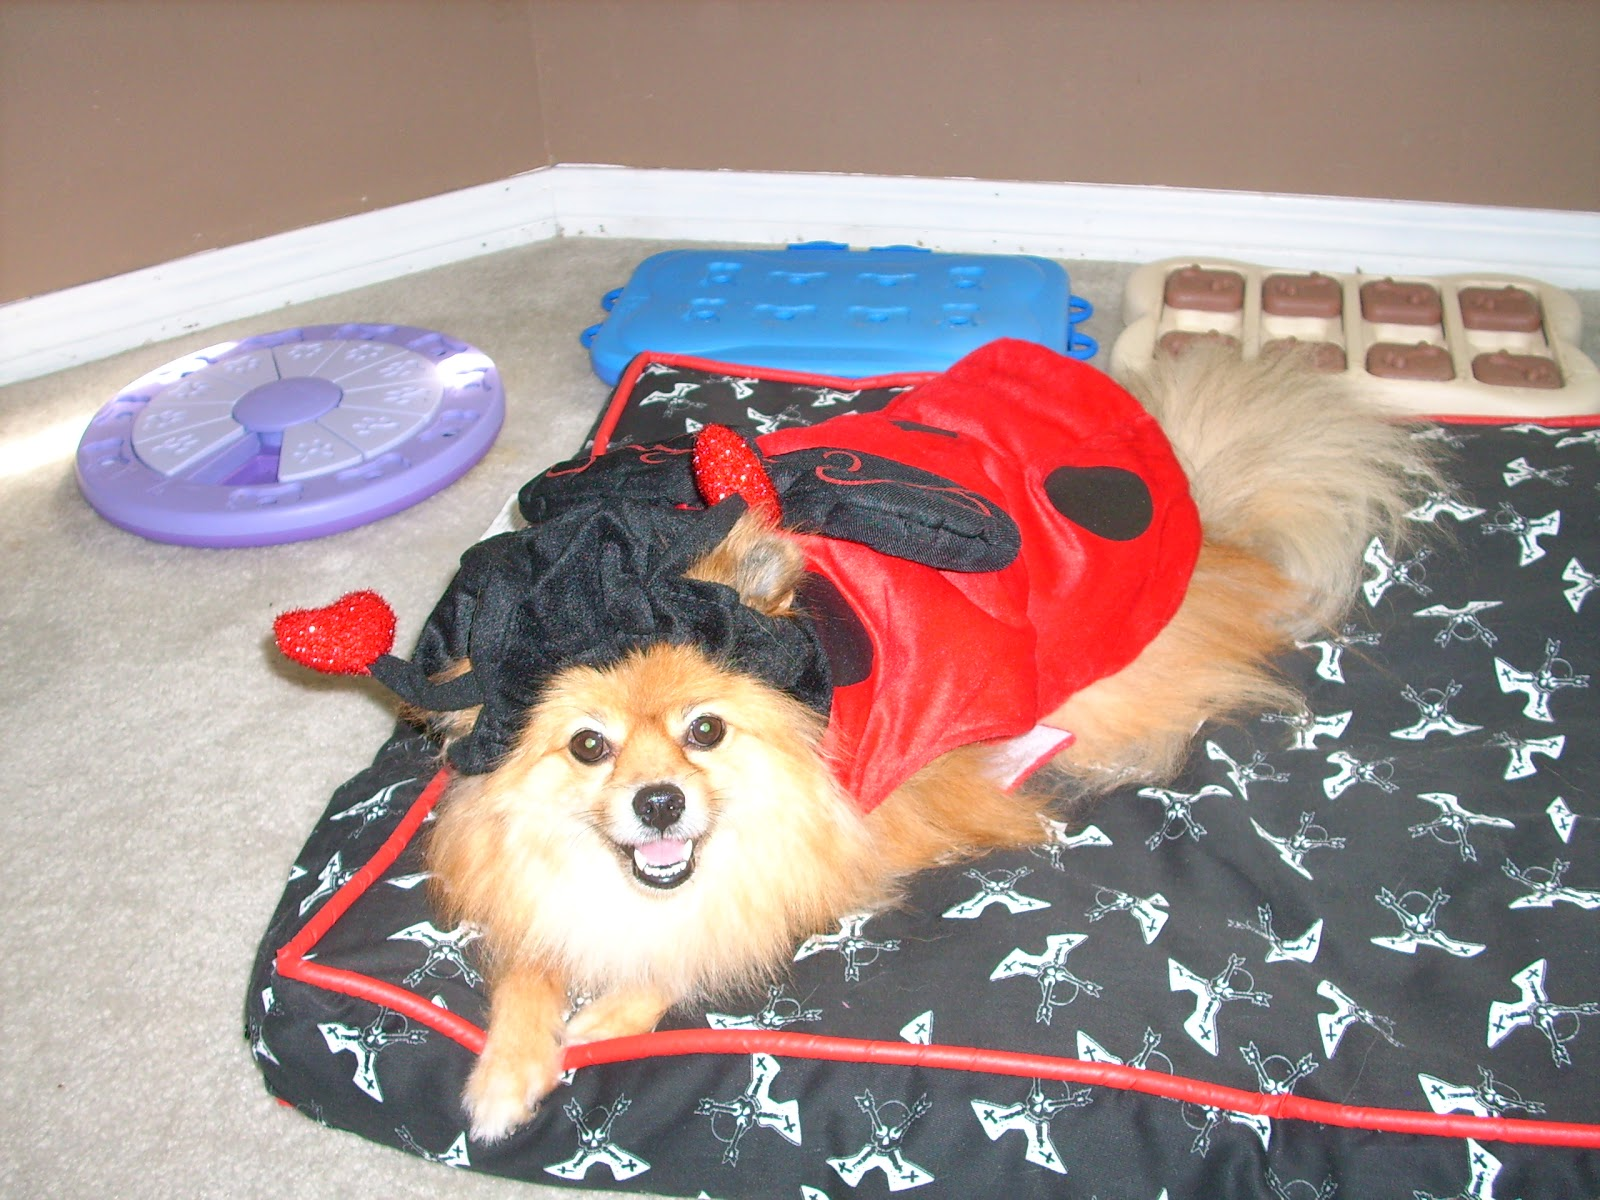 My pals at PetSmart sent this adorable Top Paw Pet Halloween Ladybug costume to me! & Pepperu0027s Paws: Top Paw Halloween Costume From PetSmart - Product Review